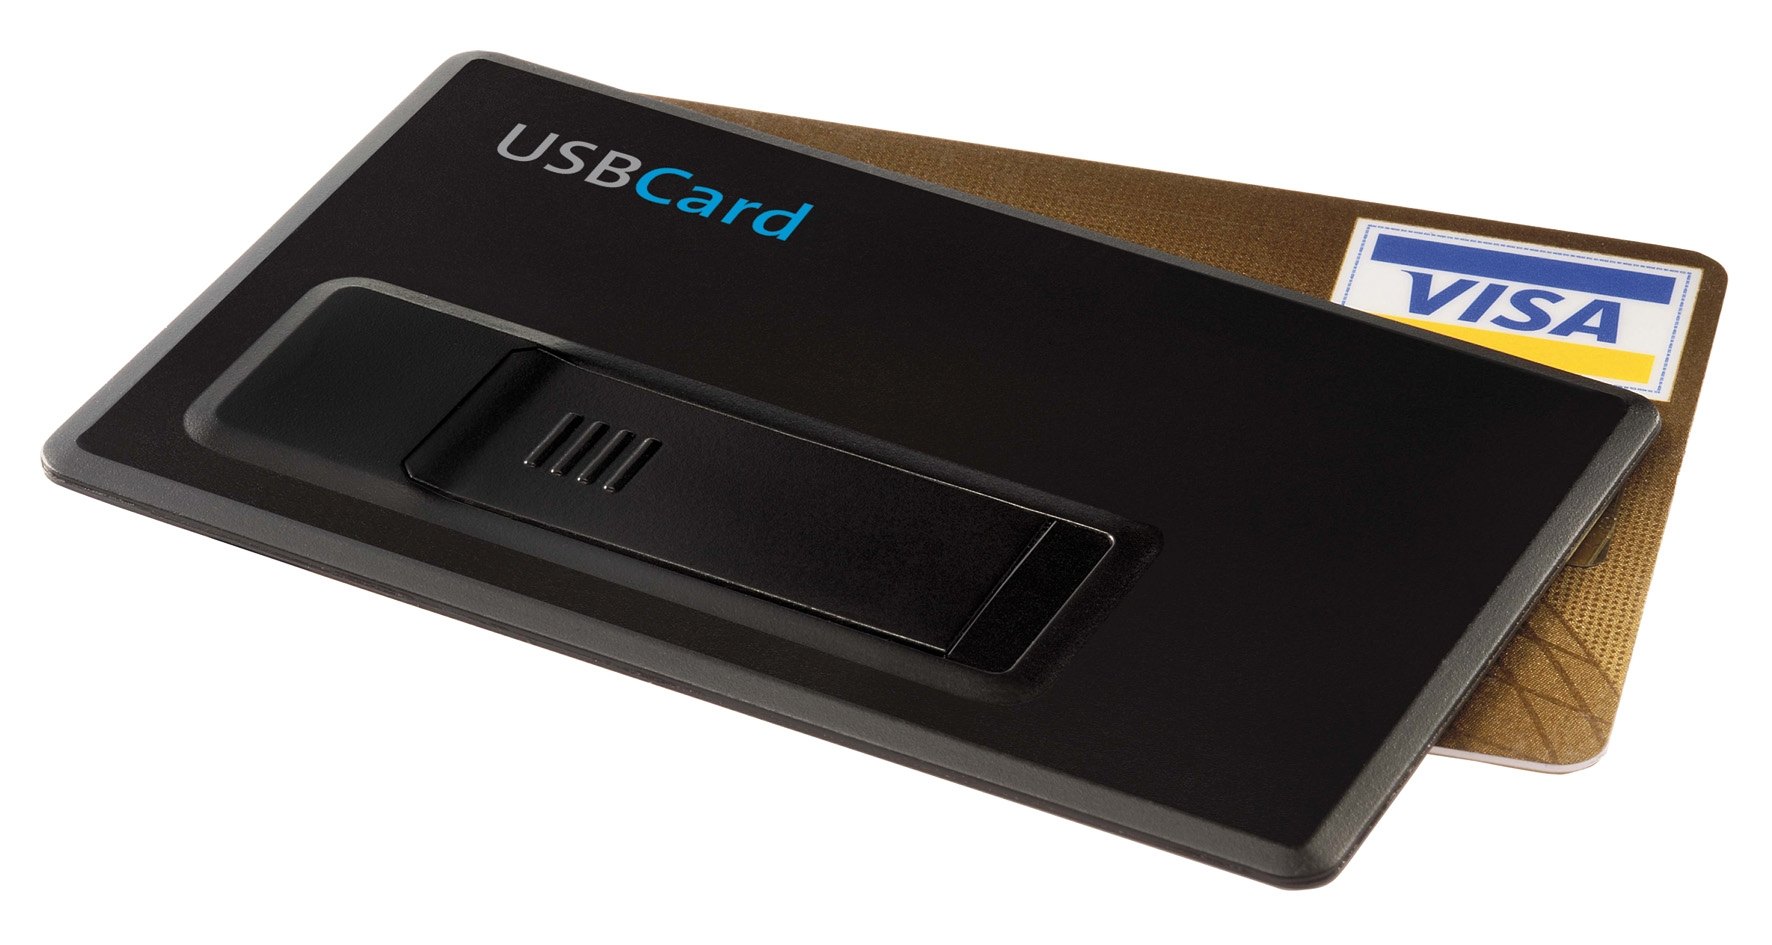 USB-the-Namecard-UTV019-1408593126.jpg